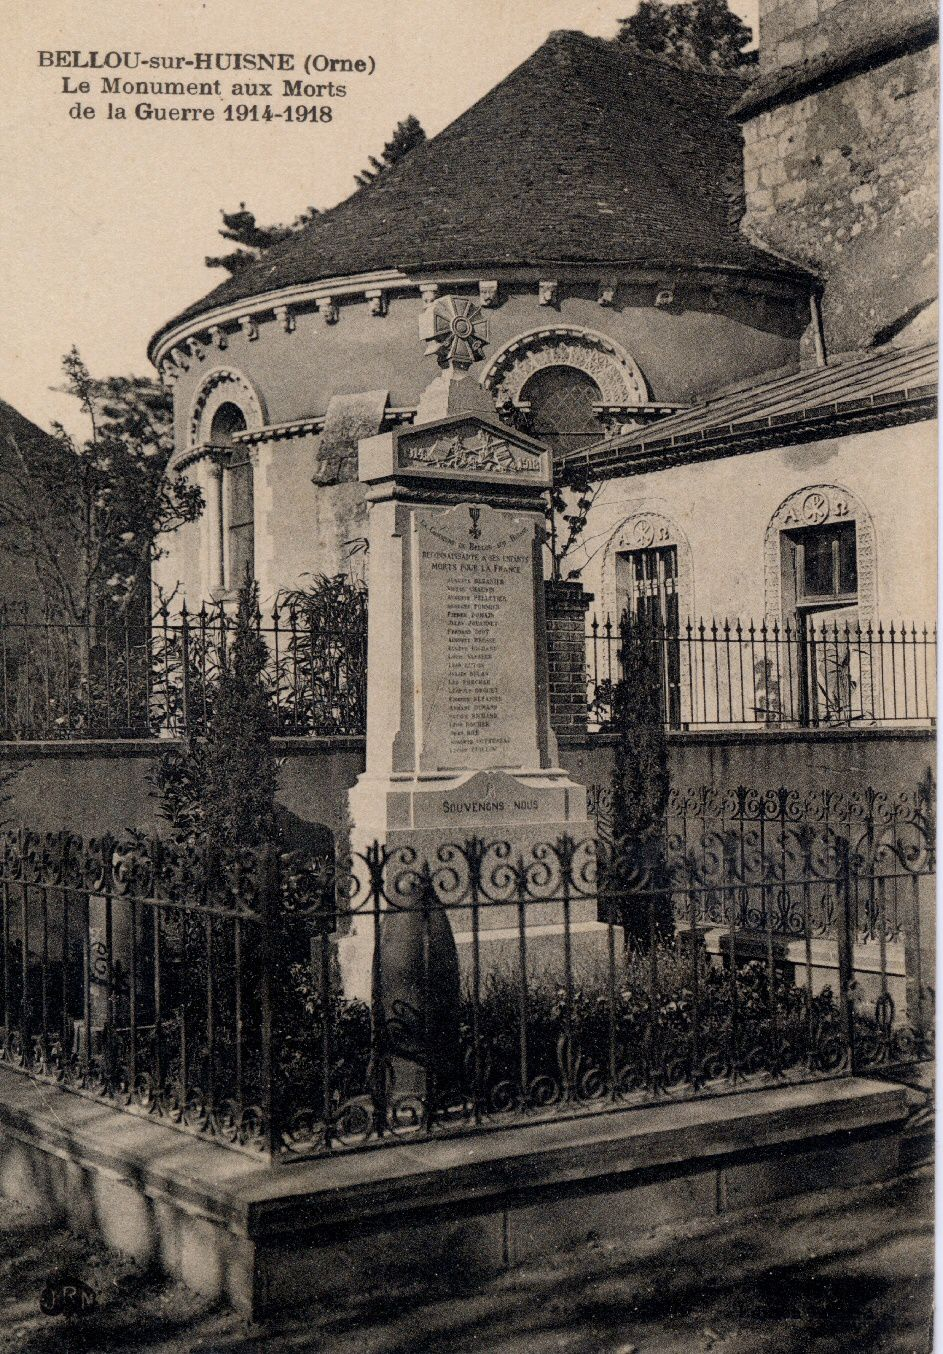 Monument aux morts Bellou-sur-Huisne, cartes postales collection J. Lecomte